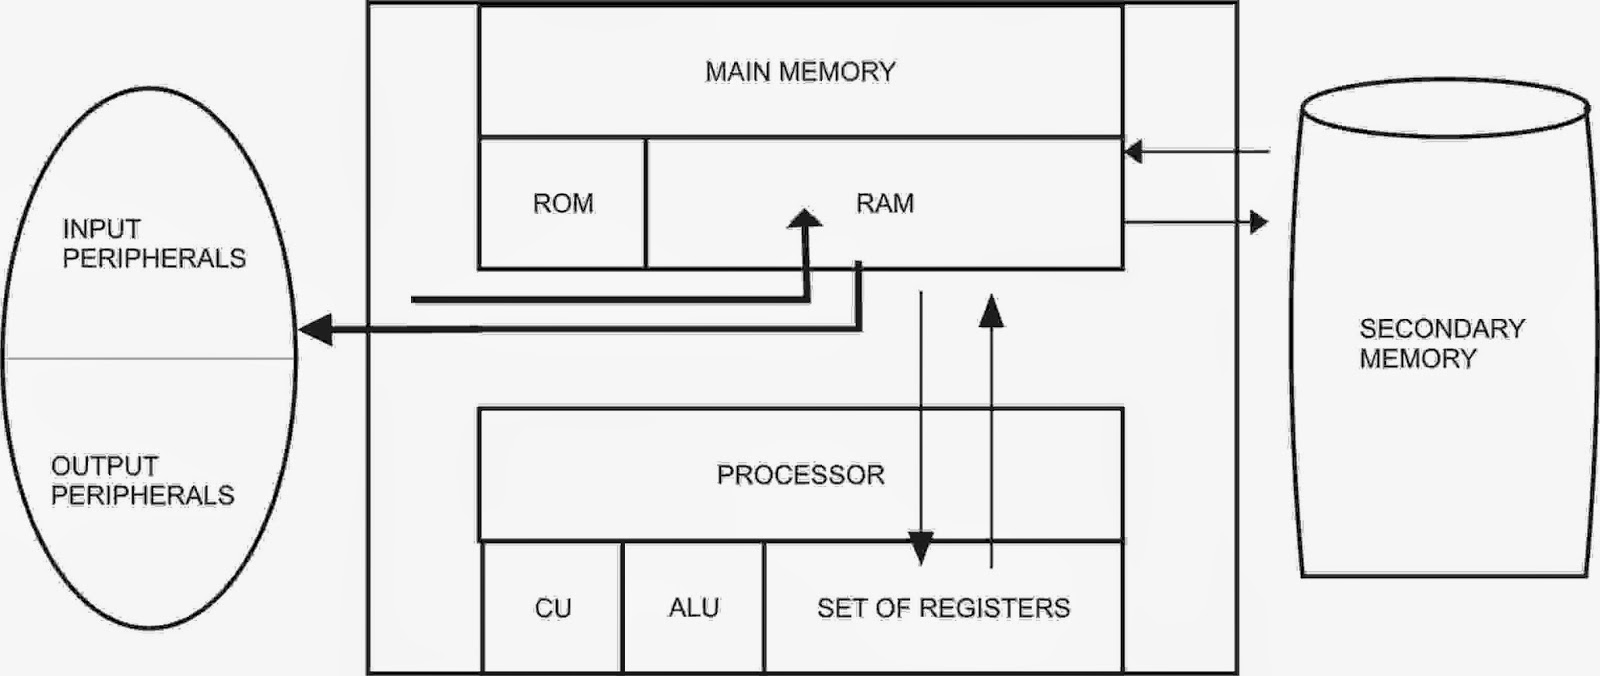 hight resolution of in this block diagram the main hardware components of a typical computer system are connected together alongwith their subparts in such a way that the